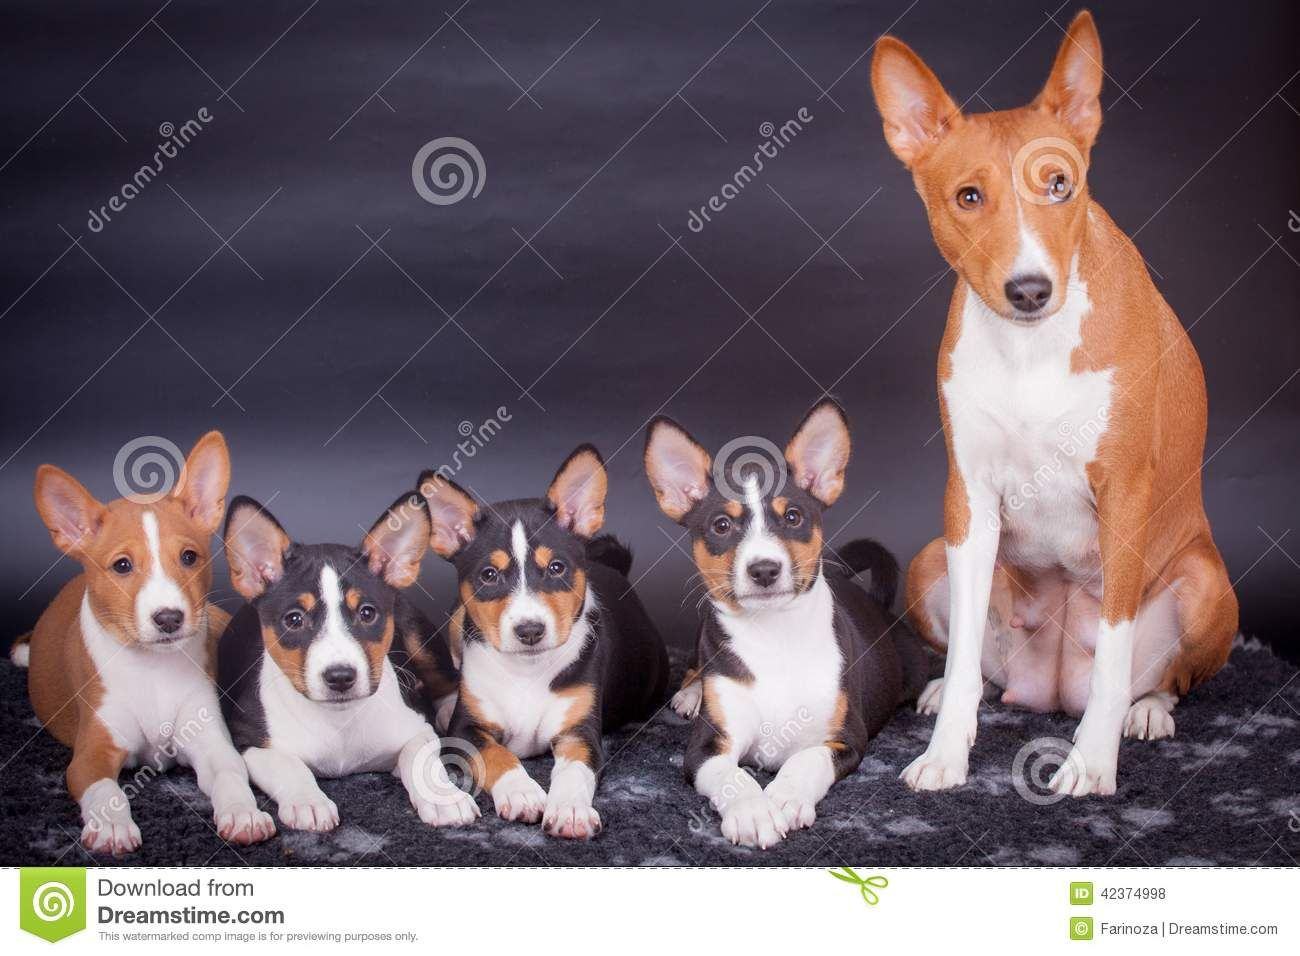 Pin by WLC on Adorable Dogs and More   Basenji puppy ...